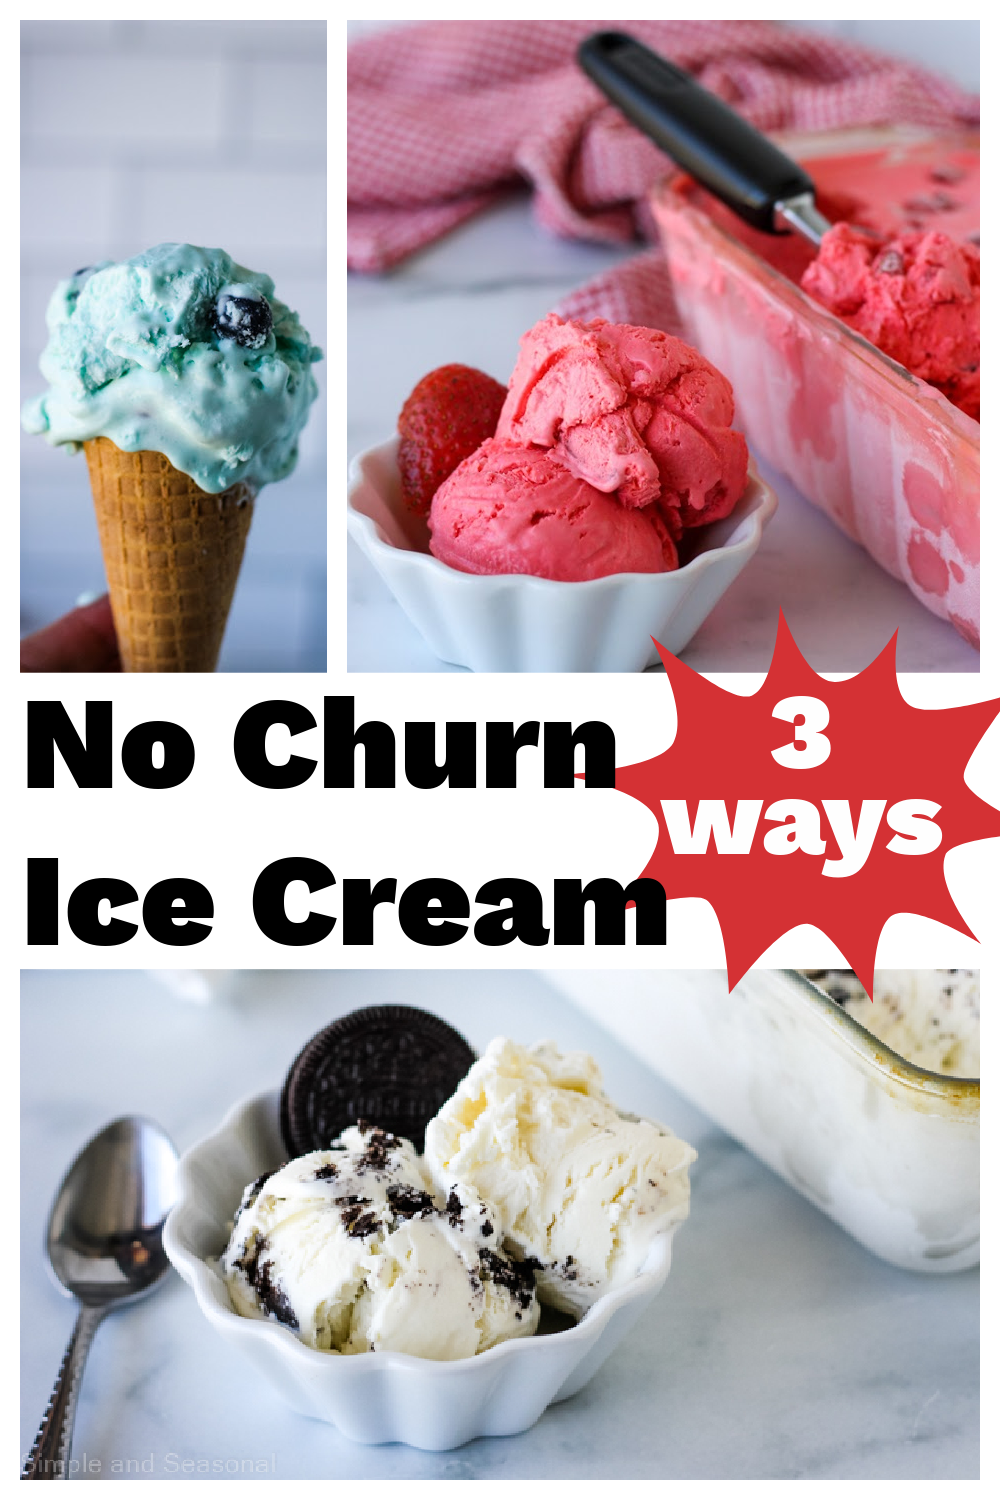 Start with a basic no churn ice cream recipe and make it your own with these 3 different options for flavoring! Homemade ice cream doesn't get any easier than this! via @nmburk